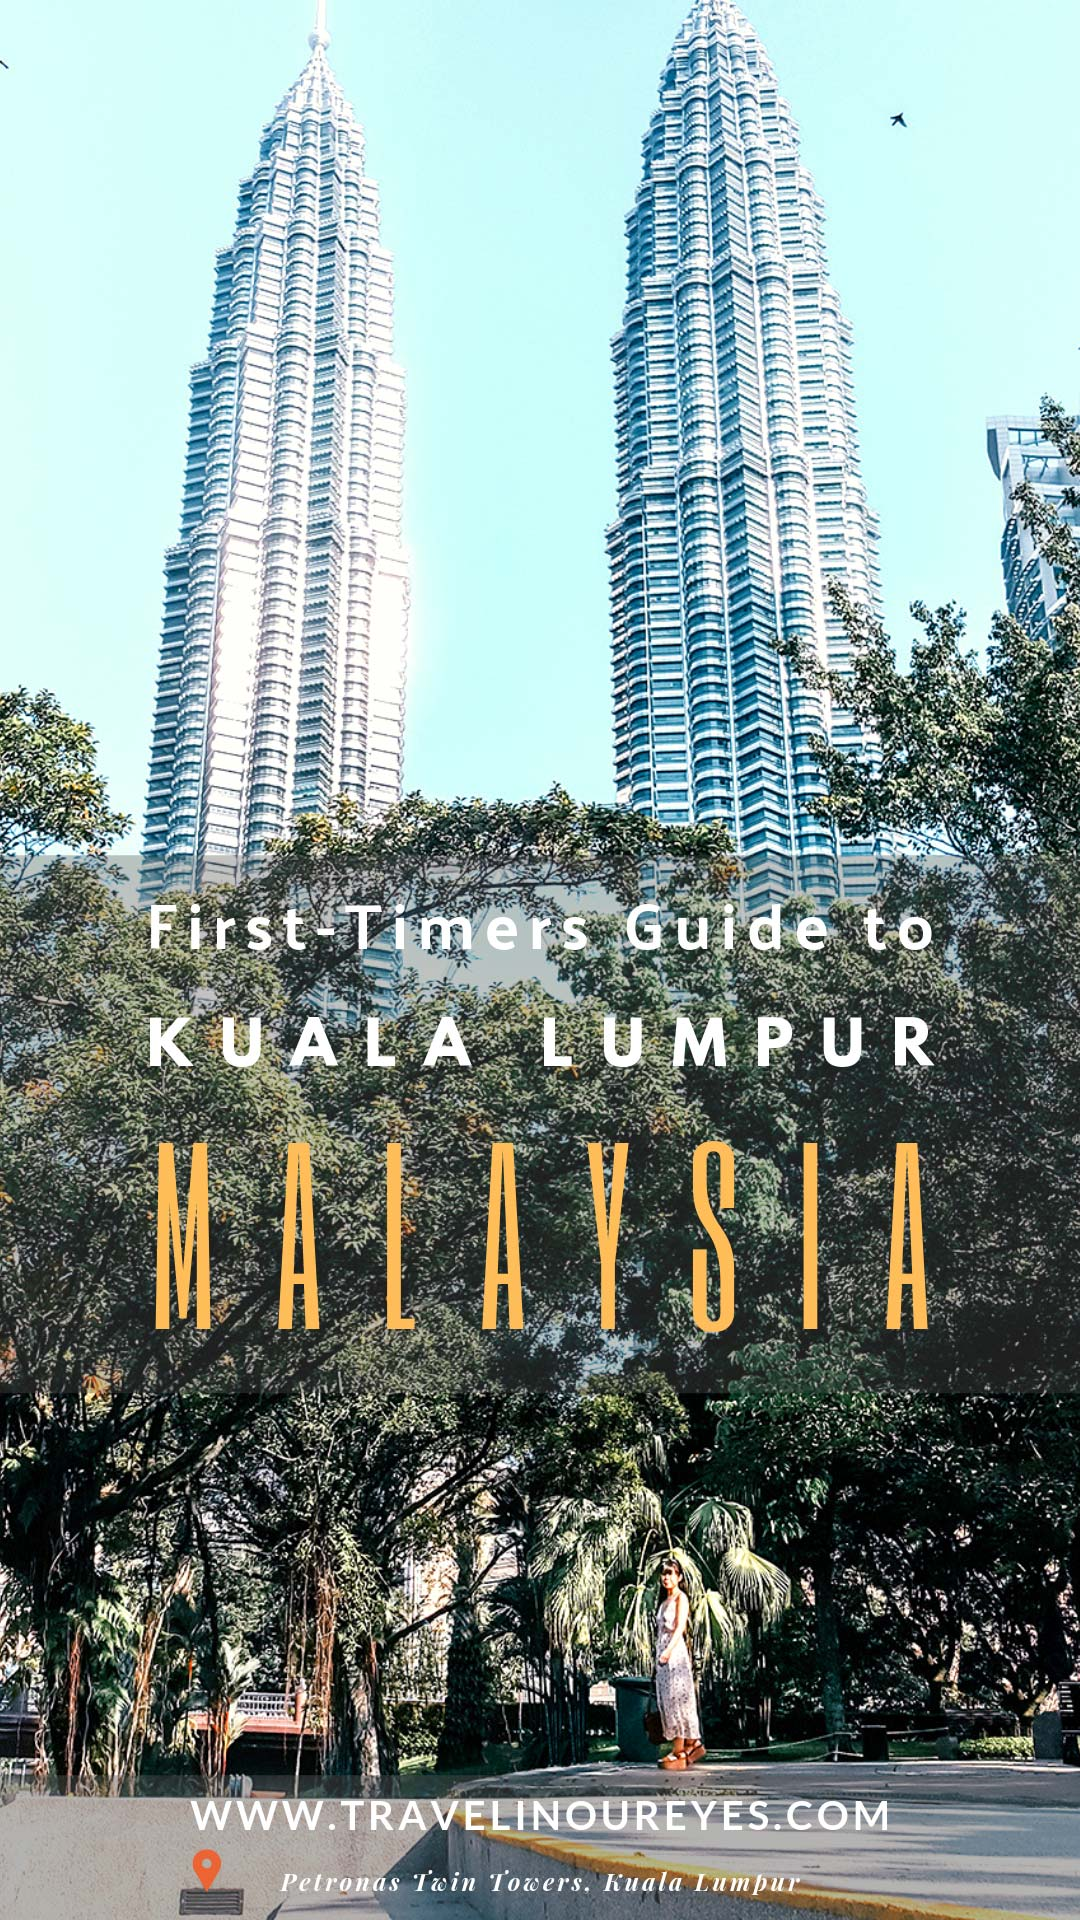 Kuala Lumpur Travel Guide for First-Timers